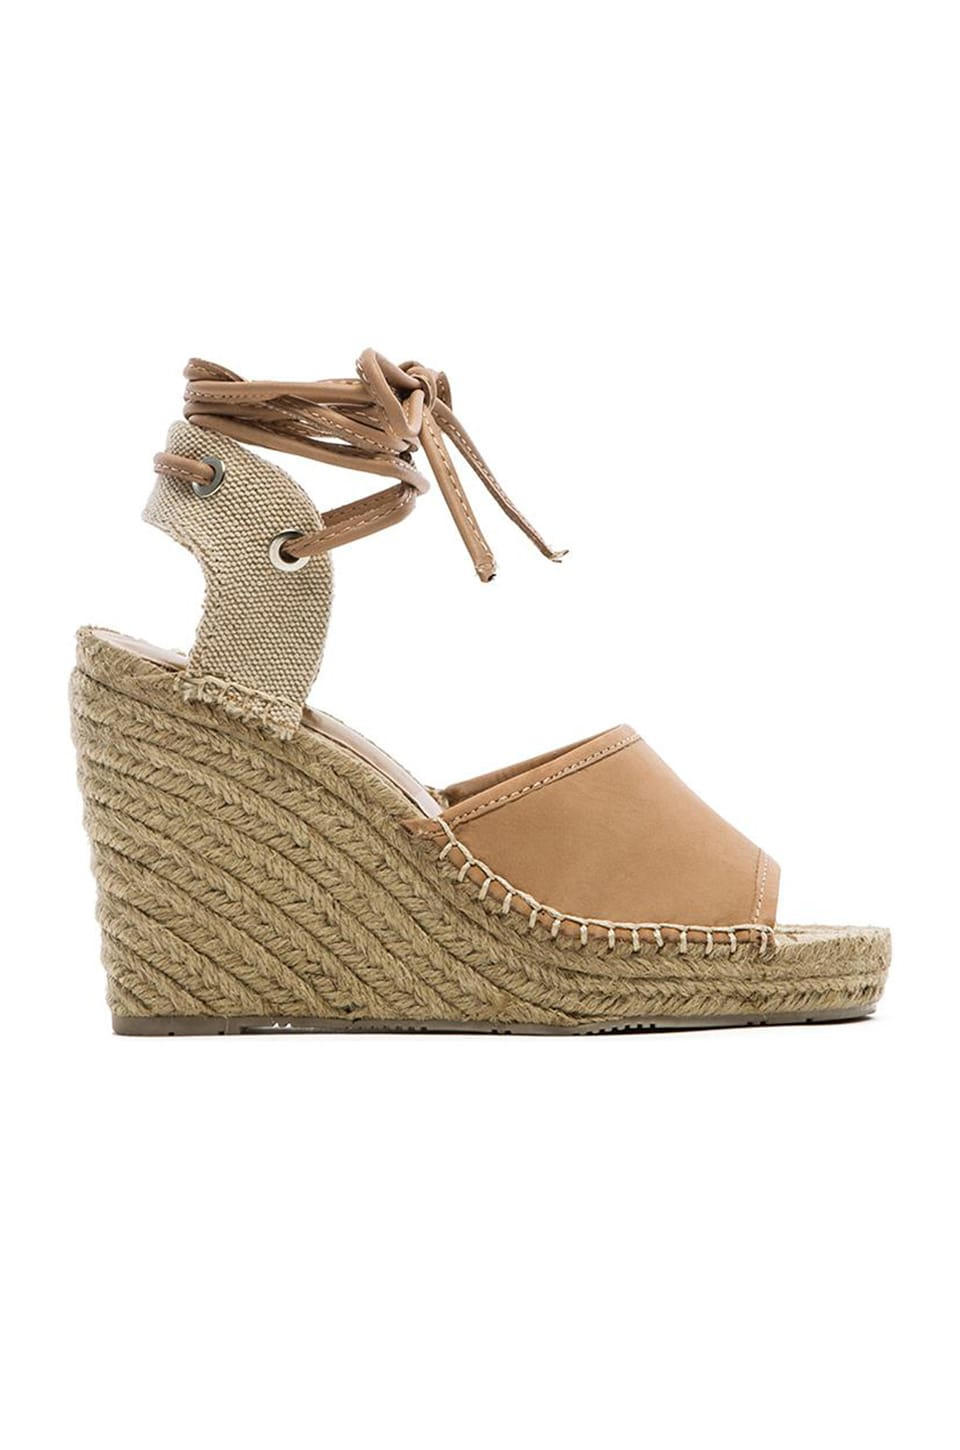 Dolce Vita Sophia Wedge in Nude